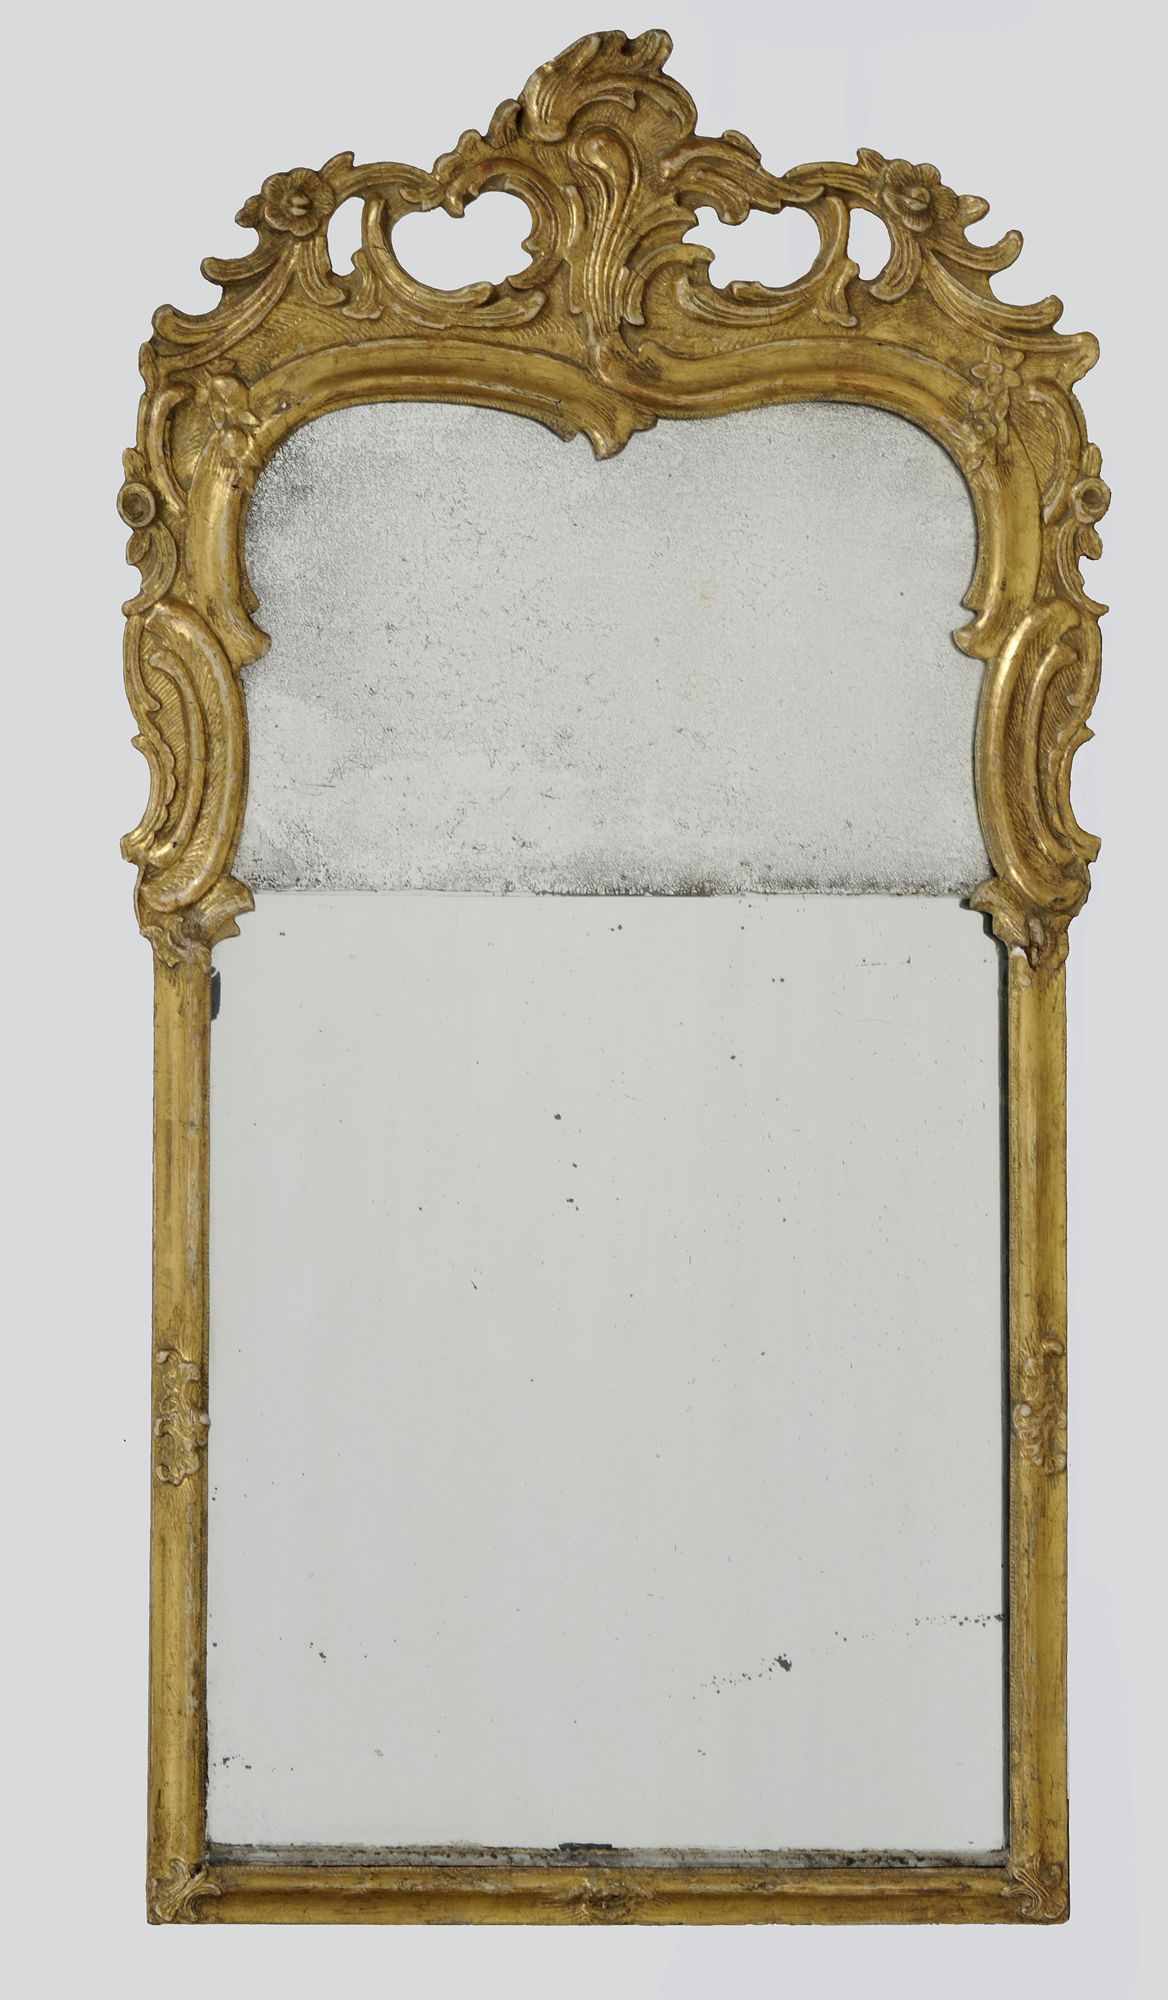 Dutch Rococo giltwood arched crest pier mirror, the split mirror plate enclosed by a frame carved and pierced with multiple C-scrolls and flowerheads. The upper mirror is original.      Dutch Circa 1760     Height: 34.5"